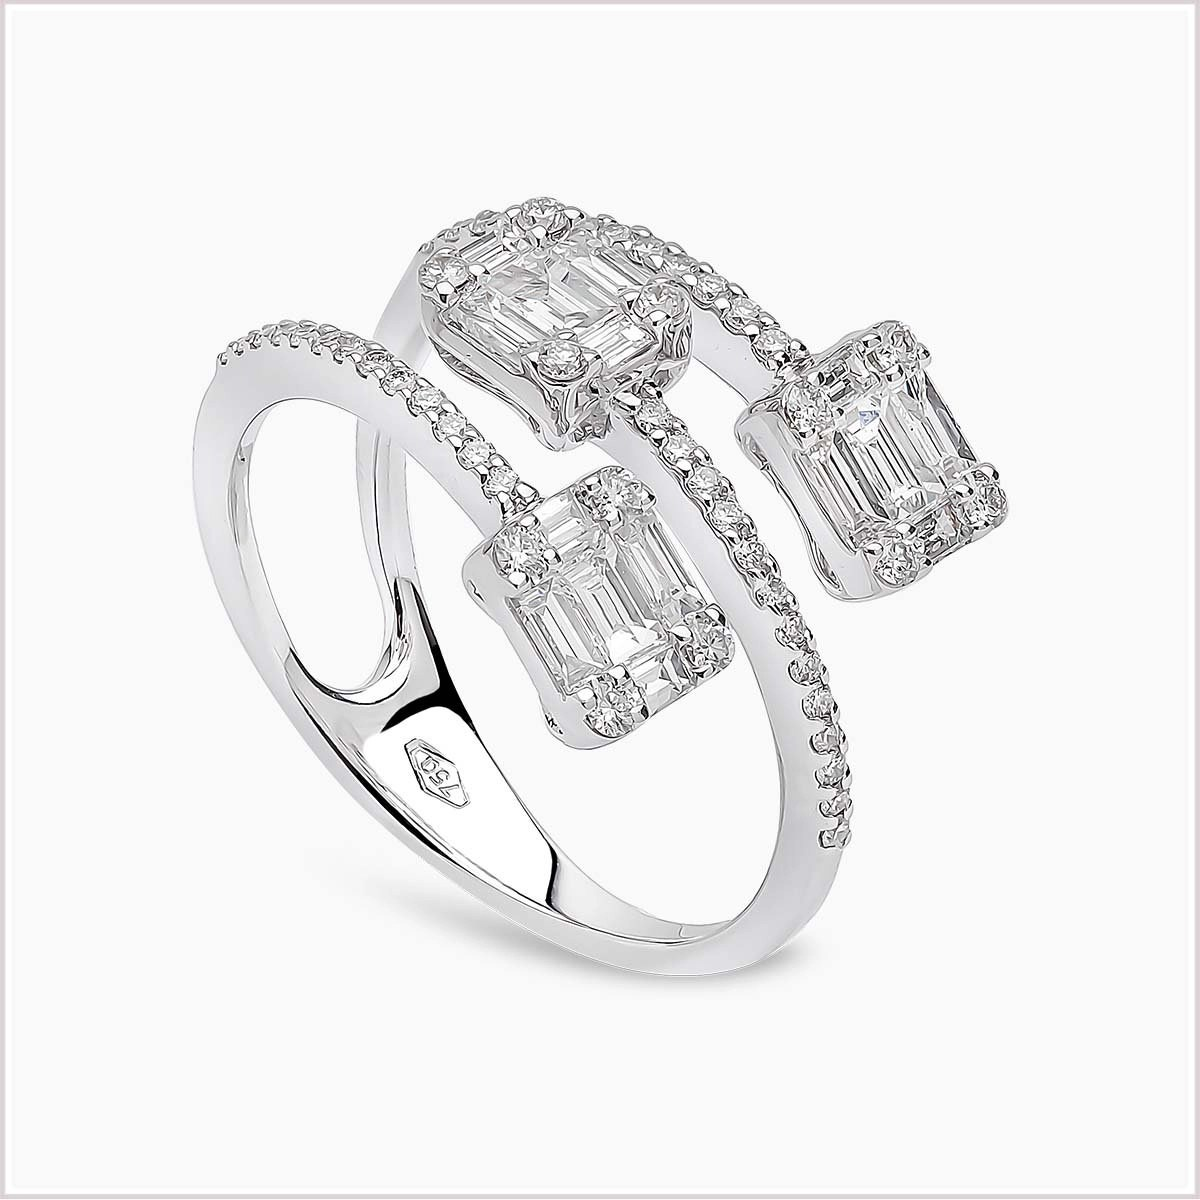 Yoko London Starlight Diamond Ring